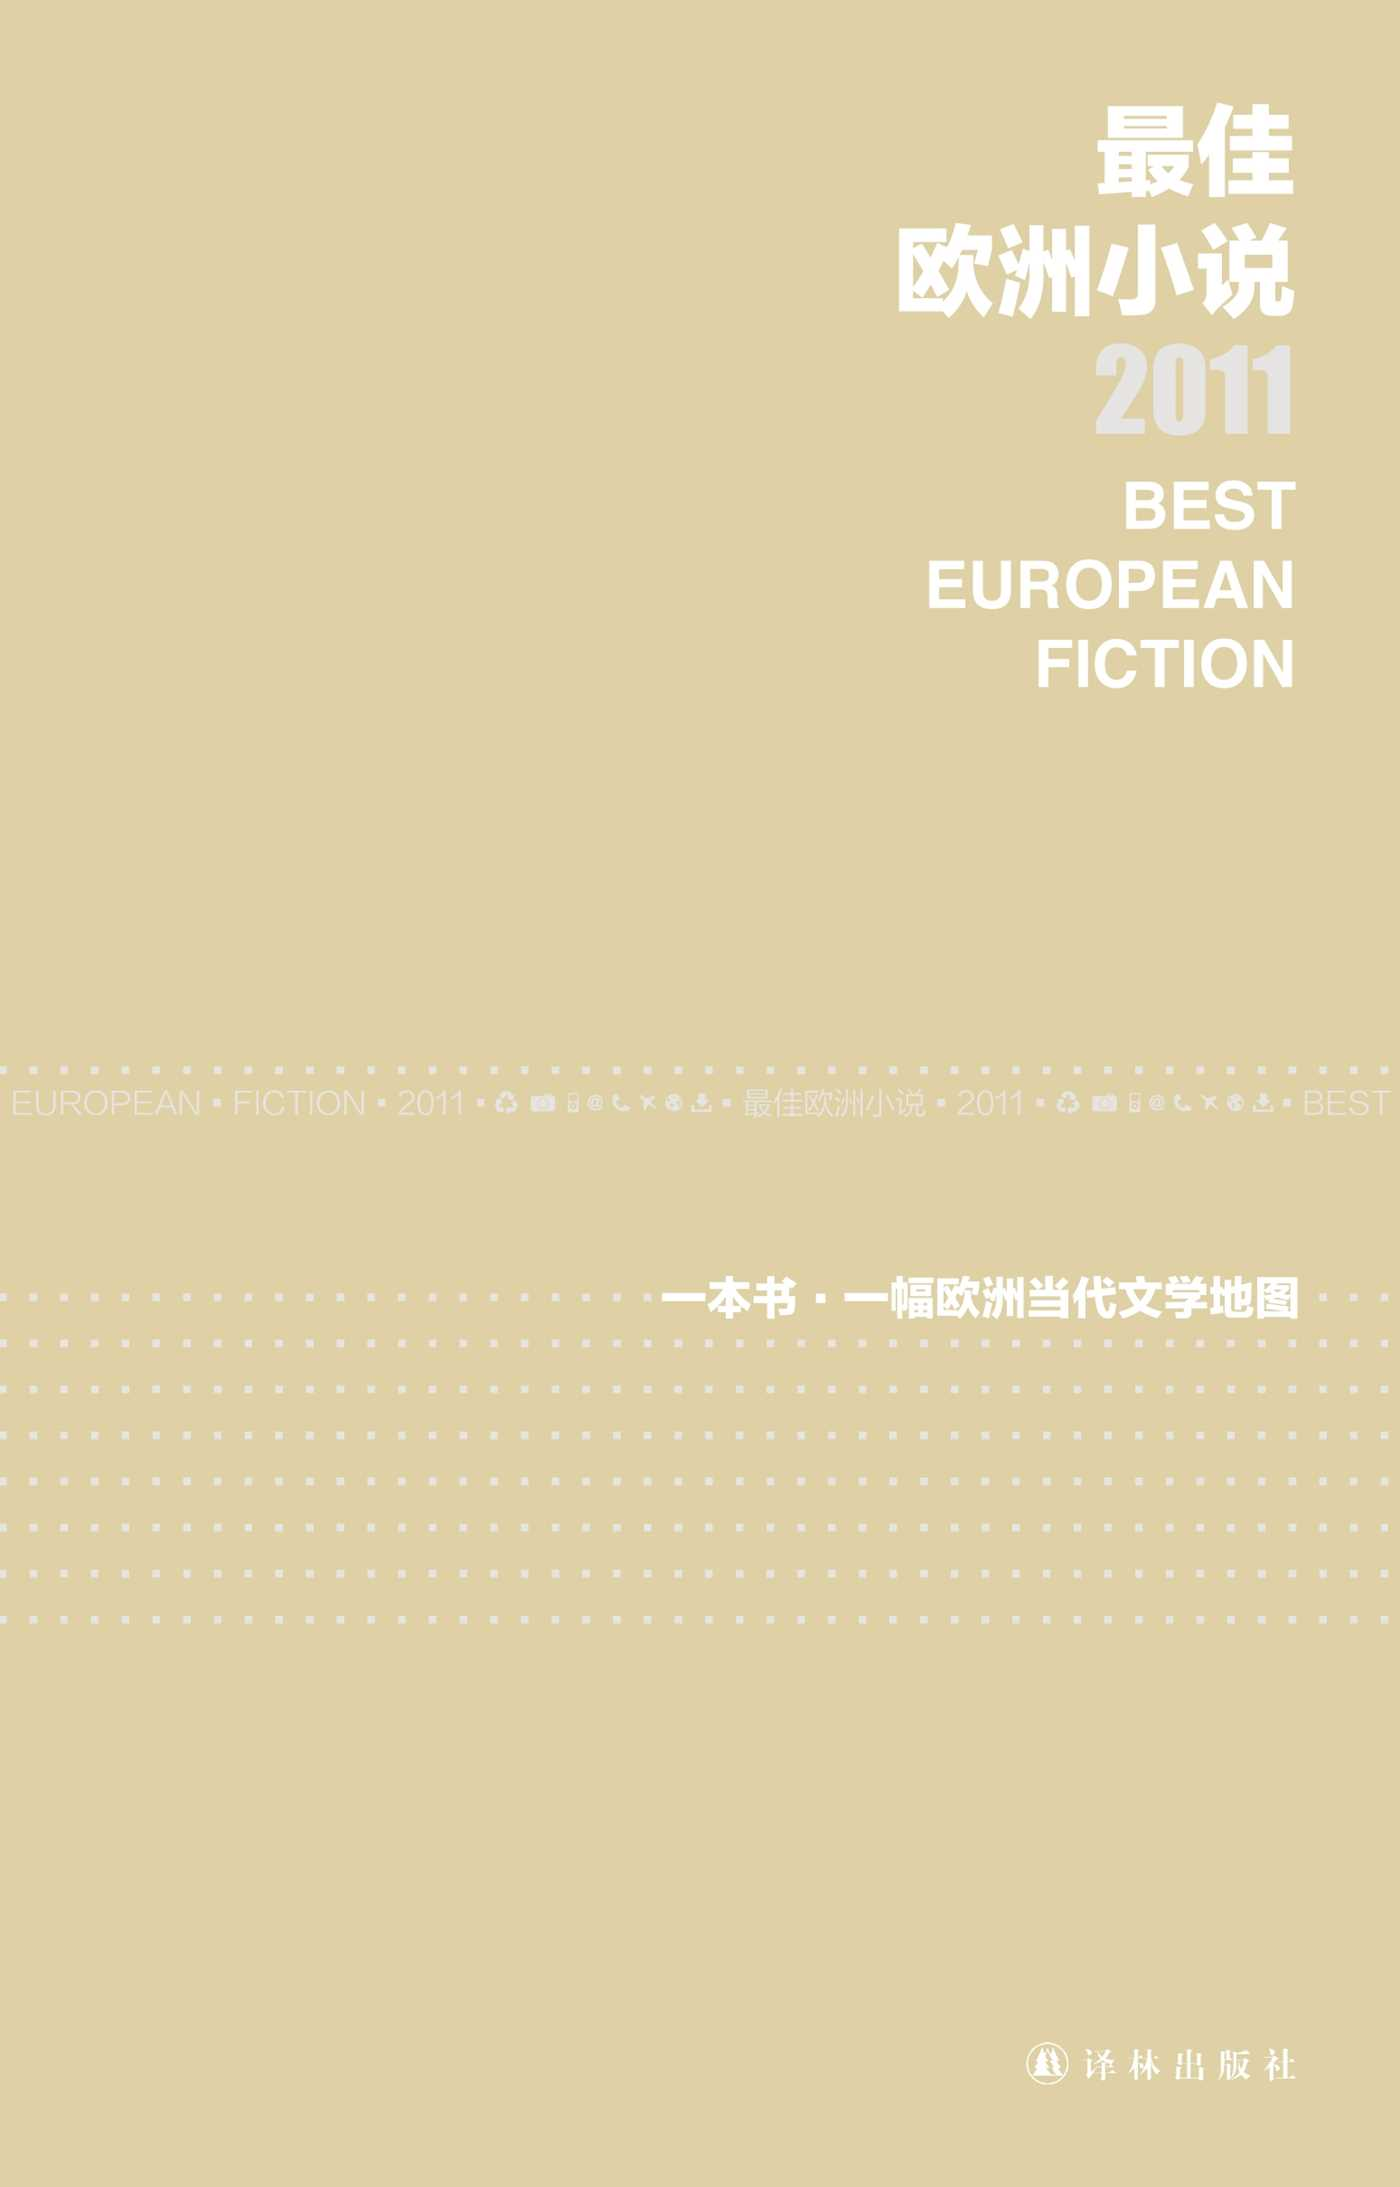 Best-european-fiction-2011-(mandarin-edition)-9787894000699_hr